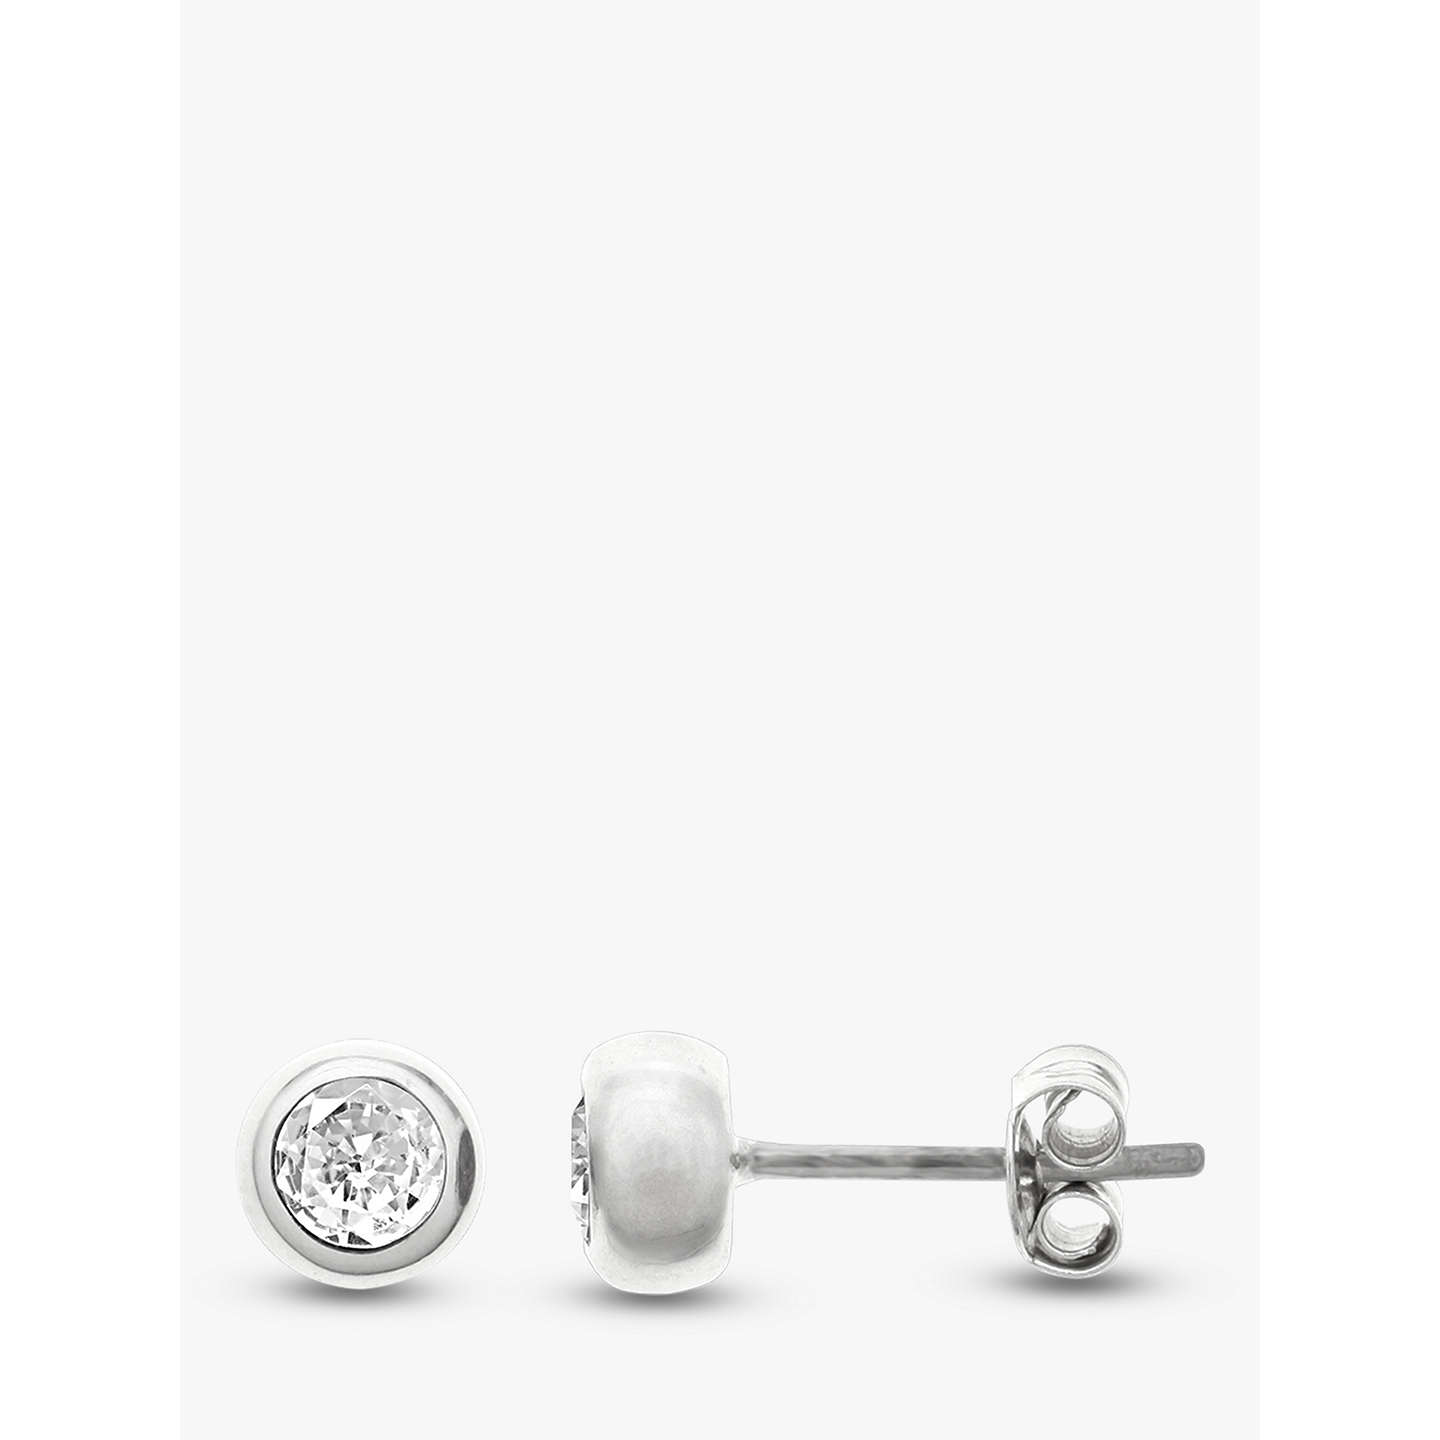 BuyNina B Sterling Silver Round Stud Earrings, Cubic Zirconia Online at johnlewis.com